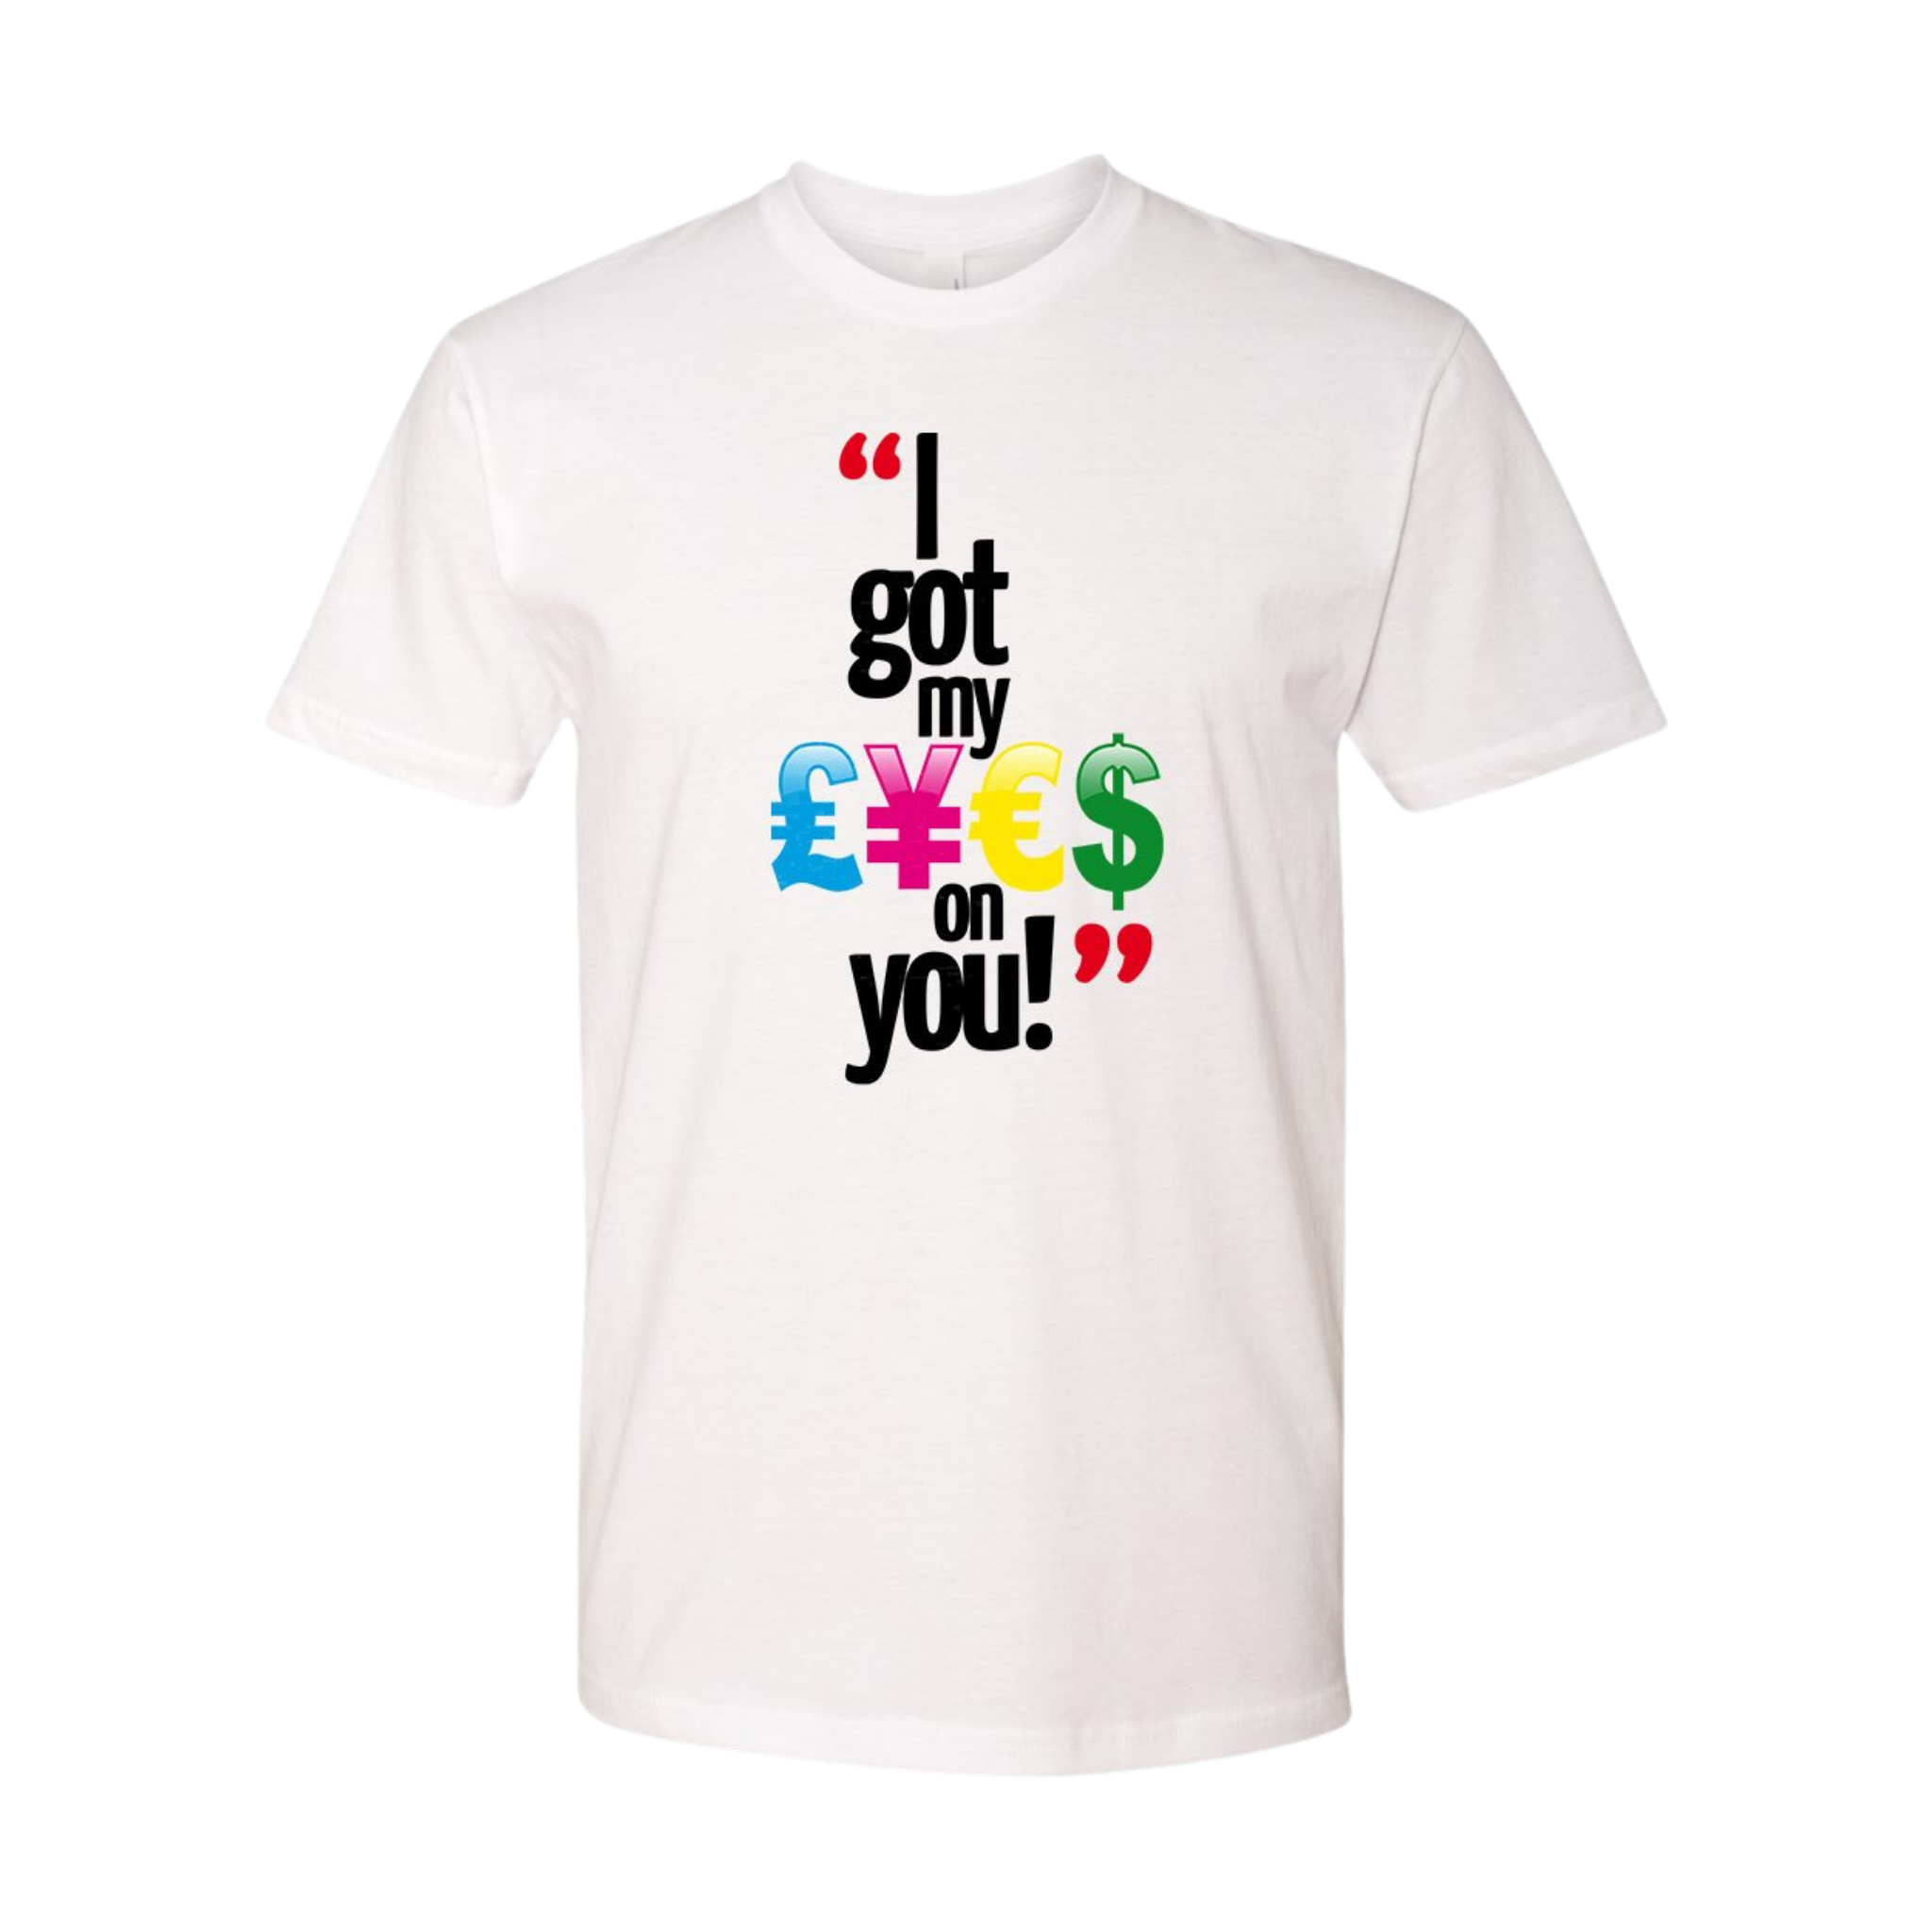 I GOT MY EYES ON YOU T-SHIRT WHITE - Royal Dynamite